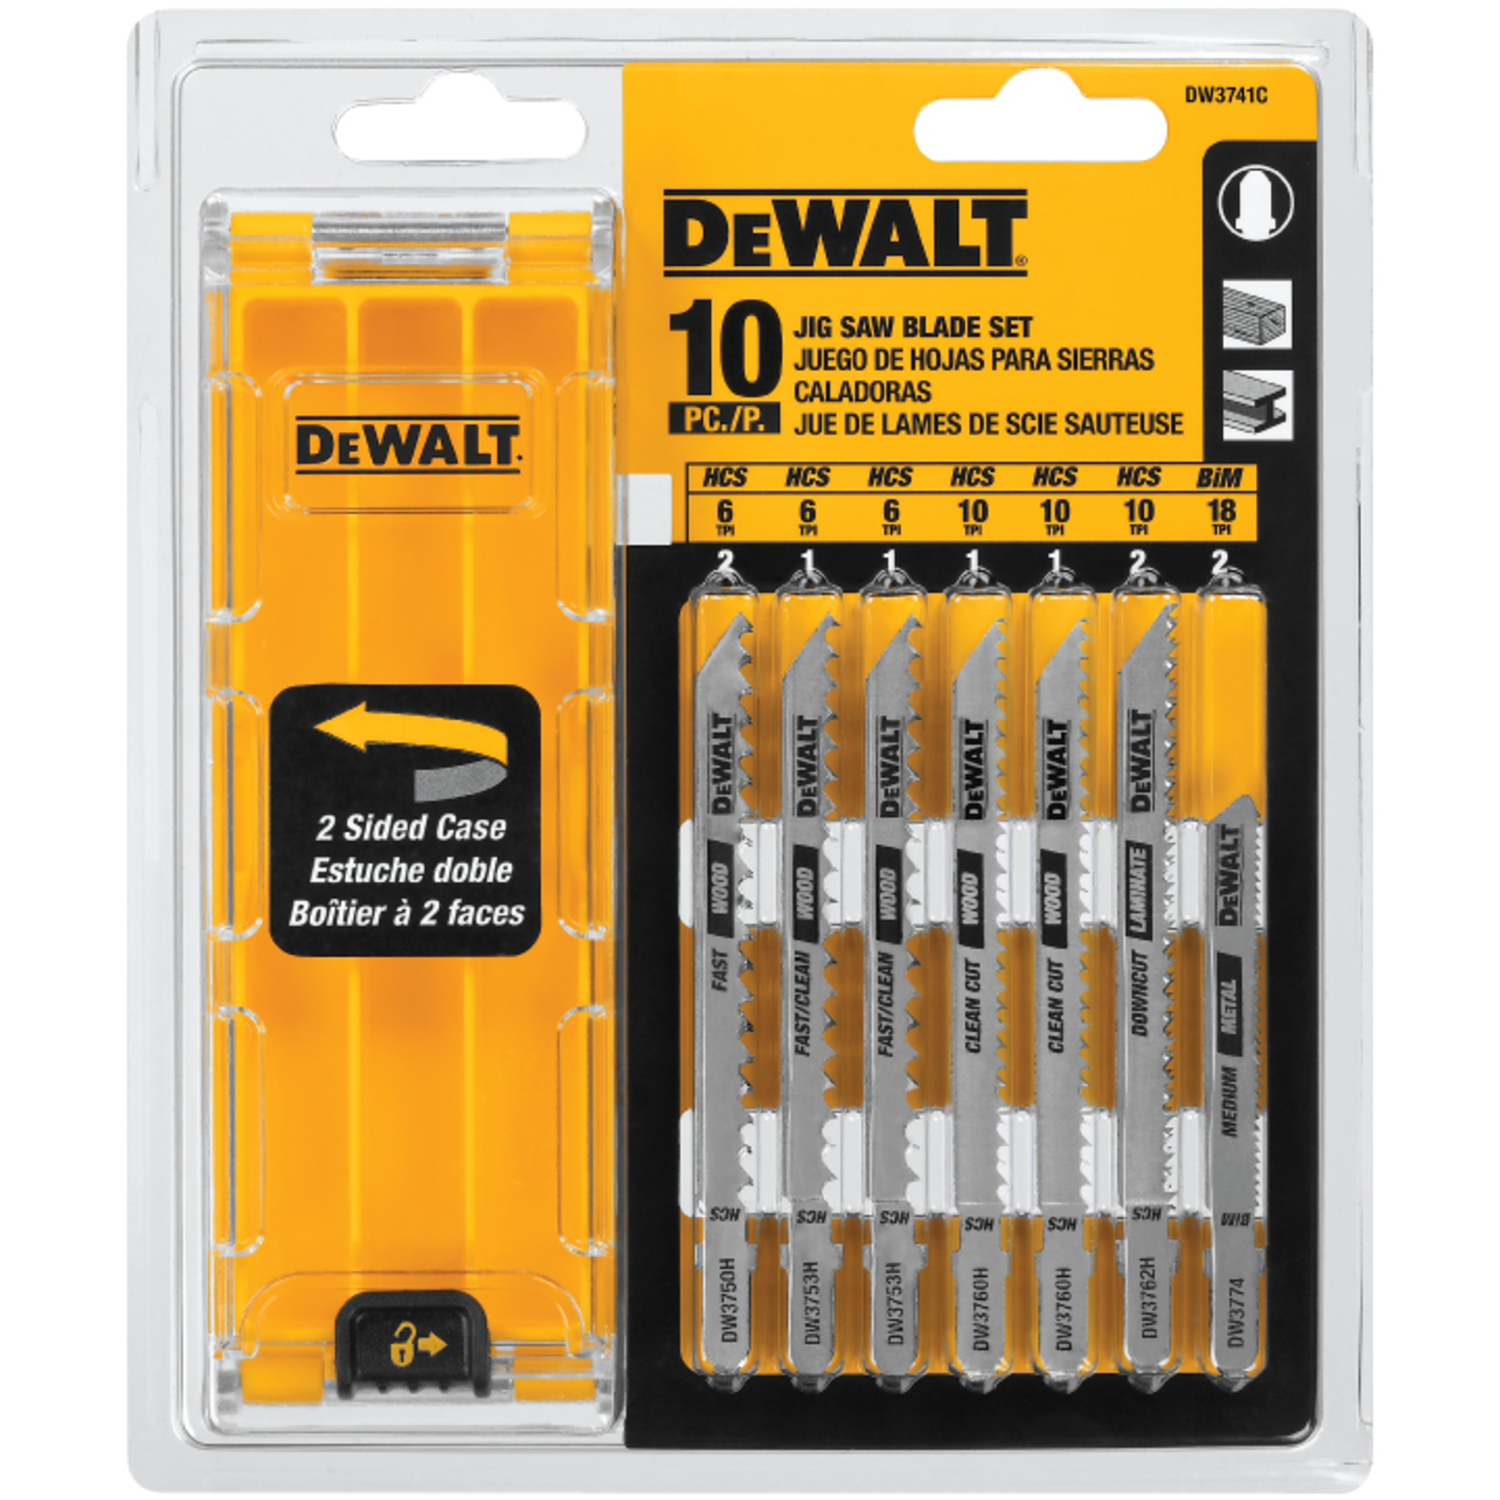 DeWalt 4 in. High Carbon Steel T-Shank Jig Saw Blade Set Assorted TPI 10 pk